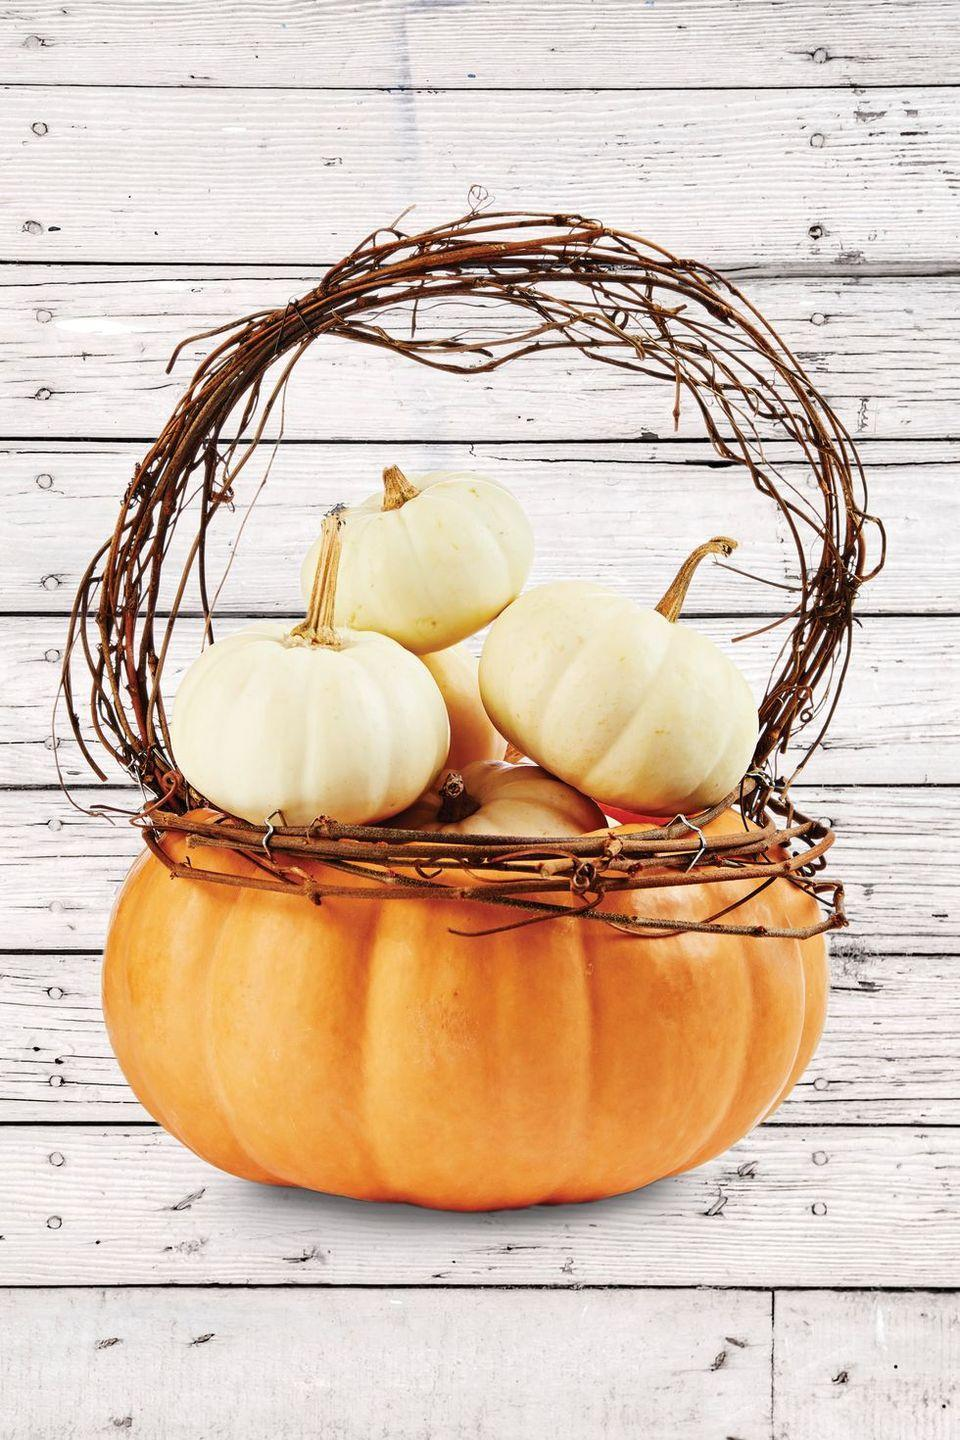 "<p>What's better than a big festive pumpkin for Halloween, you ask? A pumpkin with even more pumpkins inside of it, naturally!<strong><br></strong></p><p><strong>Make the Pumpkin Basket:</strong> Cut off the top quarter of a flat pumpkin (this is a Musquee de Provence variety); scoop out pulp and seeds. Attach lengths of grapevine just below the opening with T-pins. Attach a grapevine handle just inside the opening with T-pins. Nestle mini pumpkins in the basket.</p><p><a class=""link rapid-noclick-resp"" href=""https://www.amazon.com/Ougual-Natural-Grapevine-Garland-Wreaths/dp/B07RD3TBHT/ref=sr_1_1?tag=syn-yahoo-20&ascsubtag=%5Bartid%7C10050.g.279%5Bsrc%7Cyahoo-us"" rel=""nofollow noopener"" target=""_blank"" data-ylk=""slk:Shop Grapevine"">Shop Grapevine</a></p>"